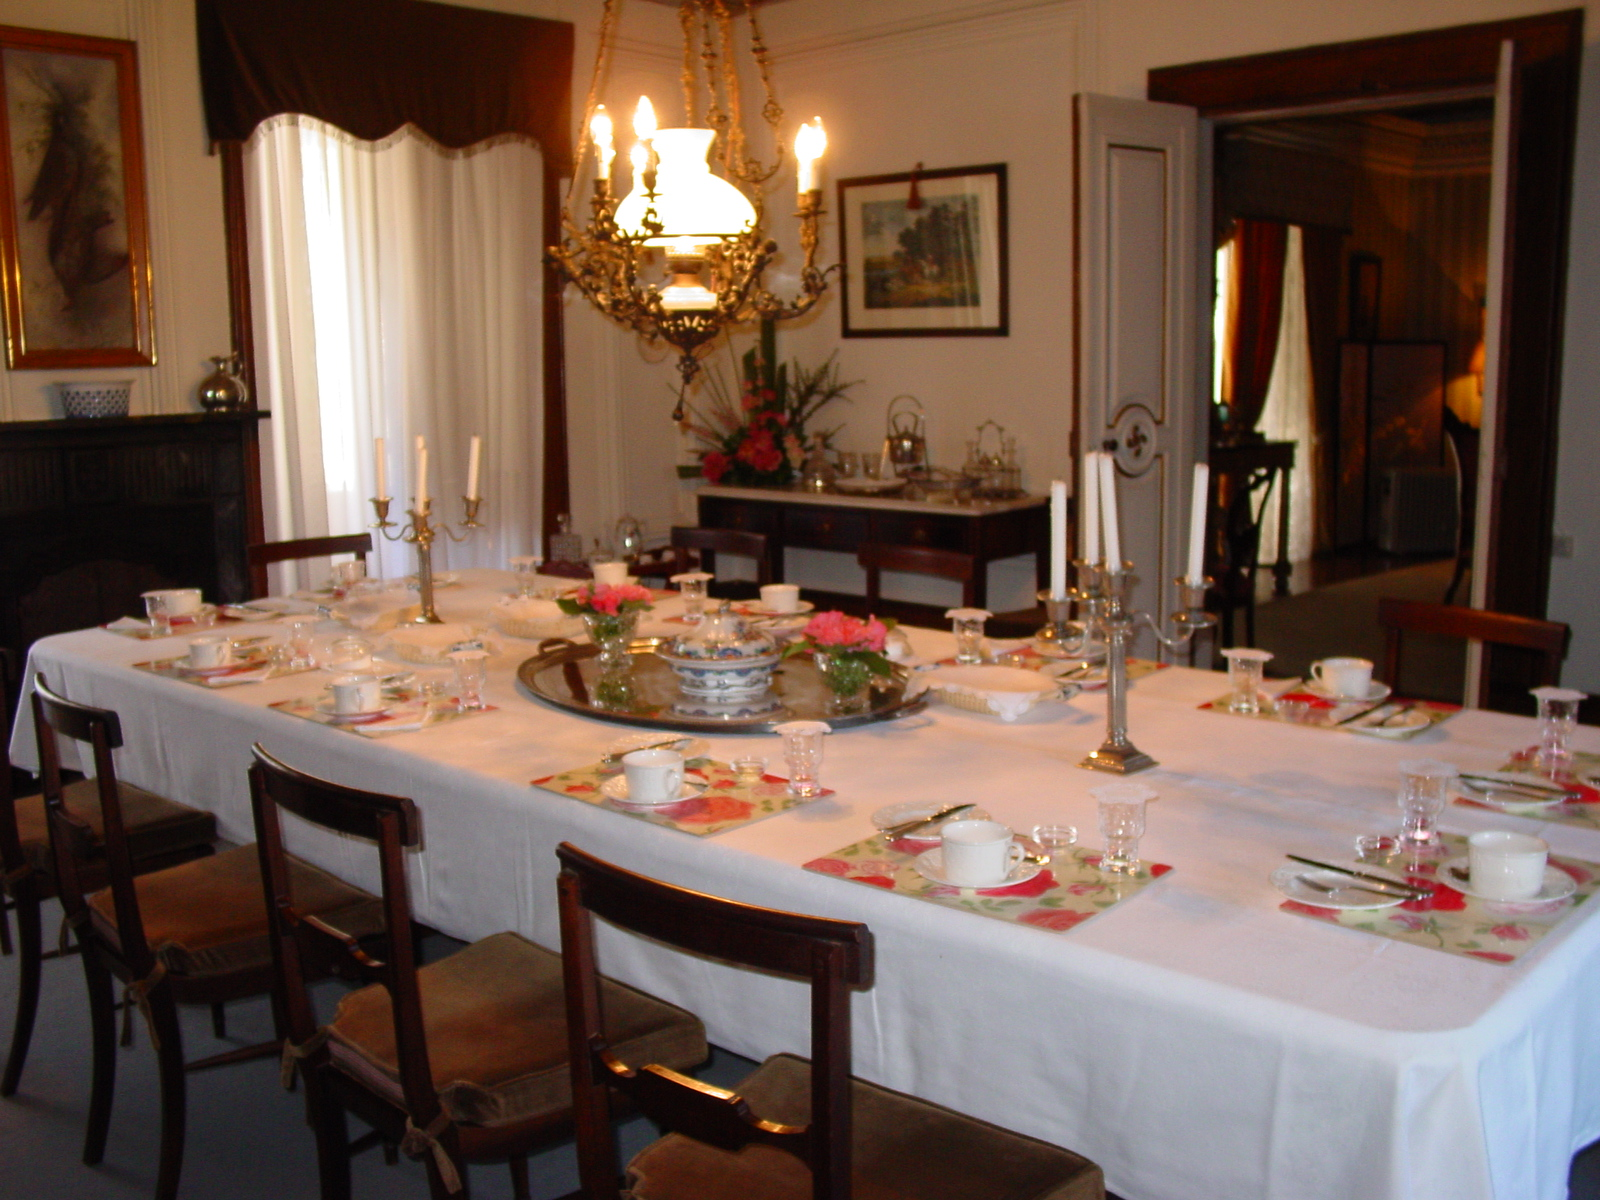 The dinning (and breakfast) table